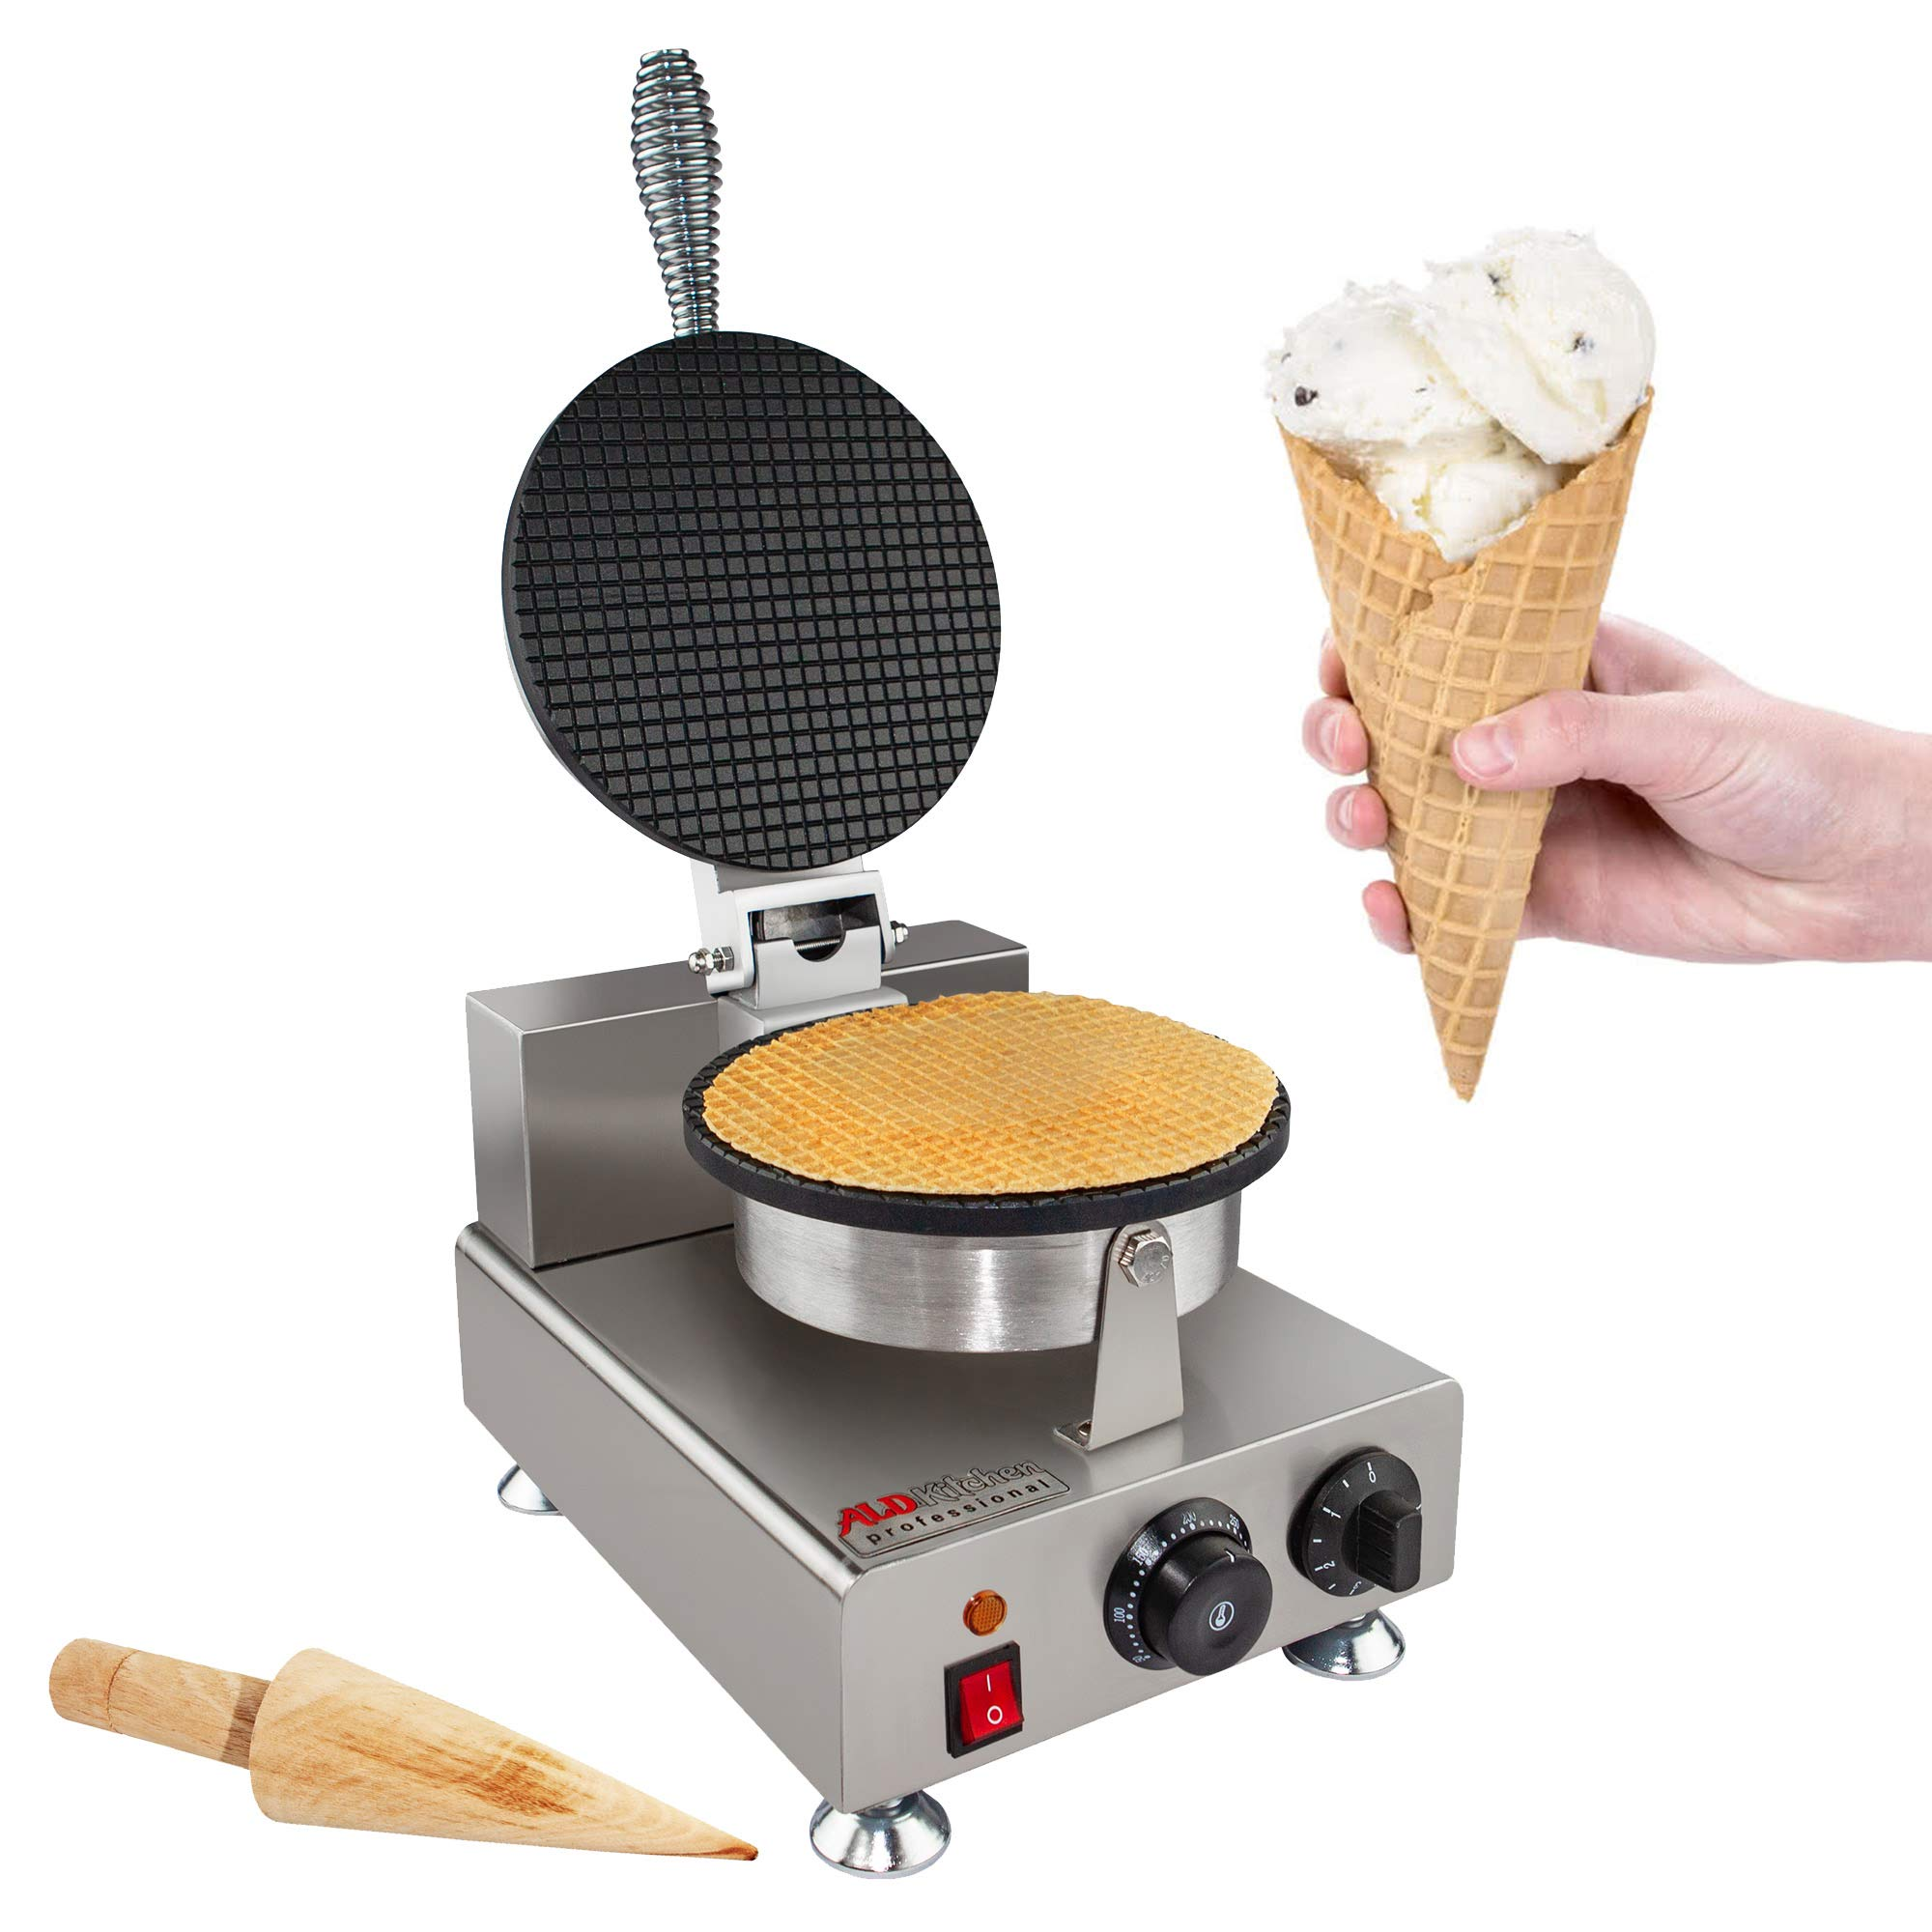 Waffle Maker Professional Rotated Nonstick (Grill/Oven for Cooking Puff, Hong Kong Style, Egg, QQ, Muffin, Cake Eggettes and Belgian Bubble Waffles) (110V with US Plug)